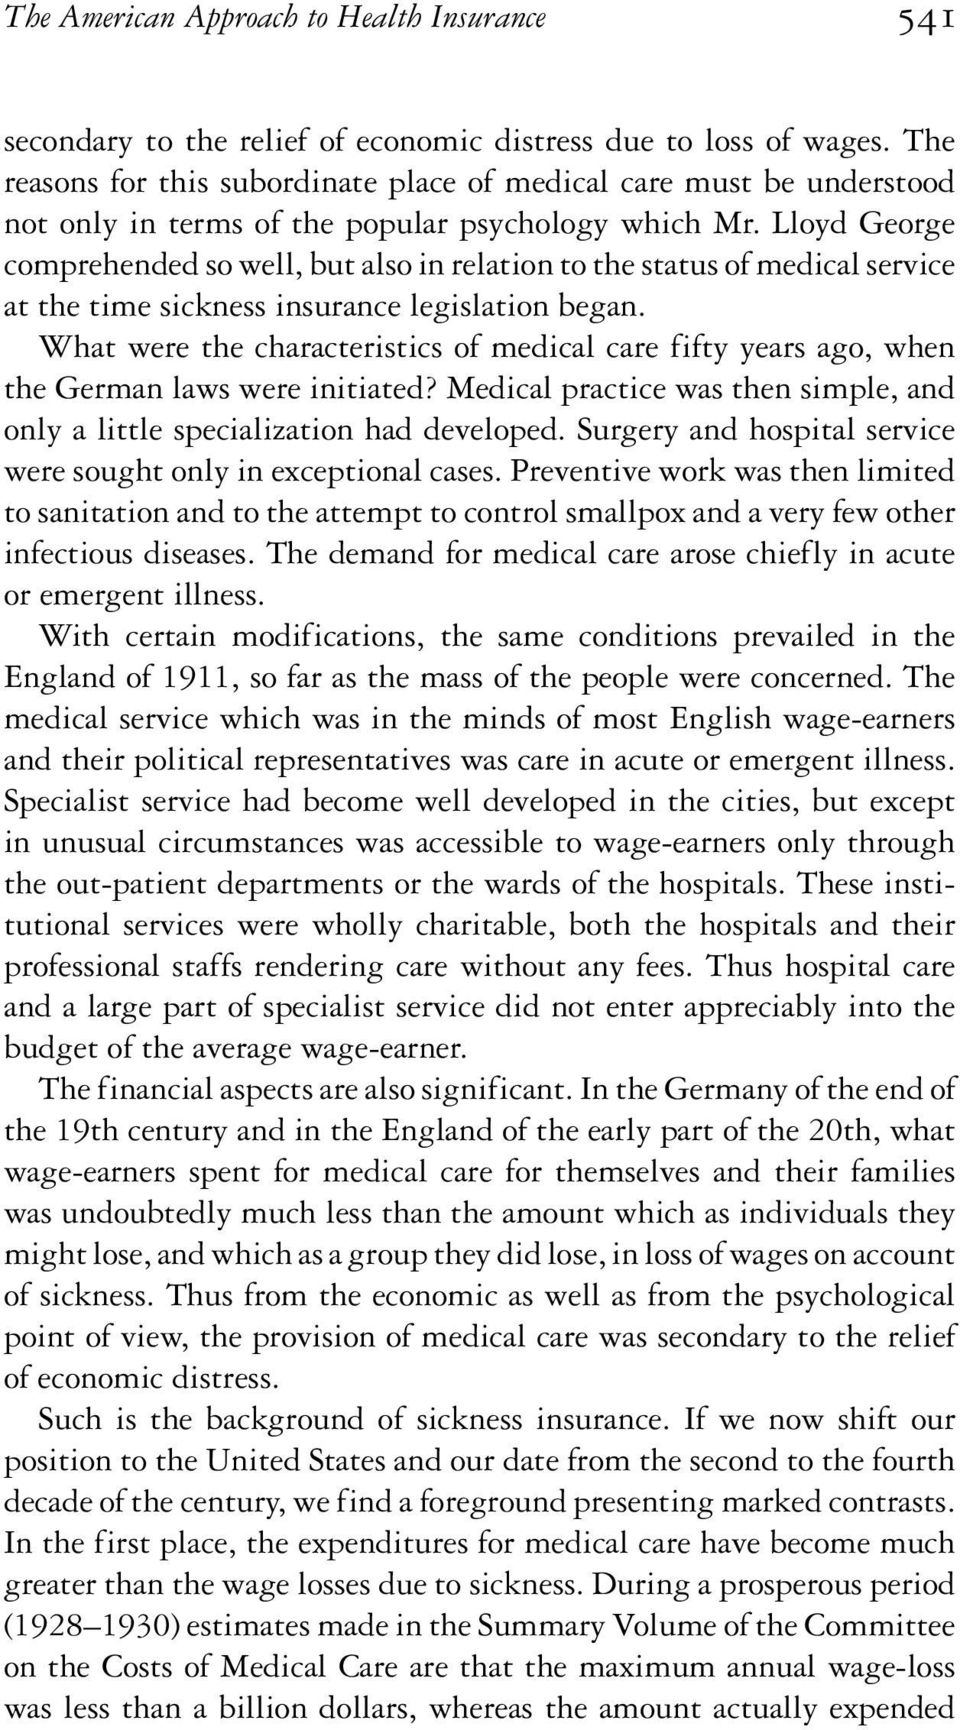 Lloyd George comprehended so well, but also in relation to the status of medical service at the time sickness insurance legislation began.